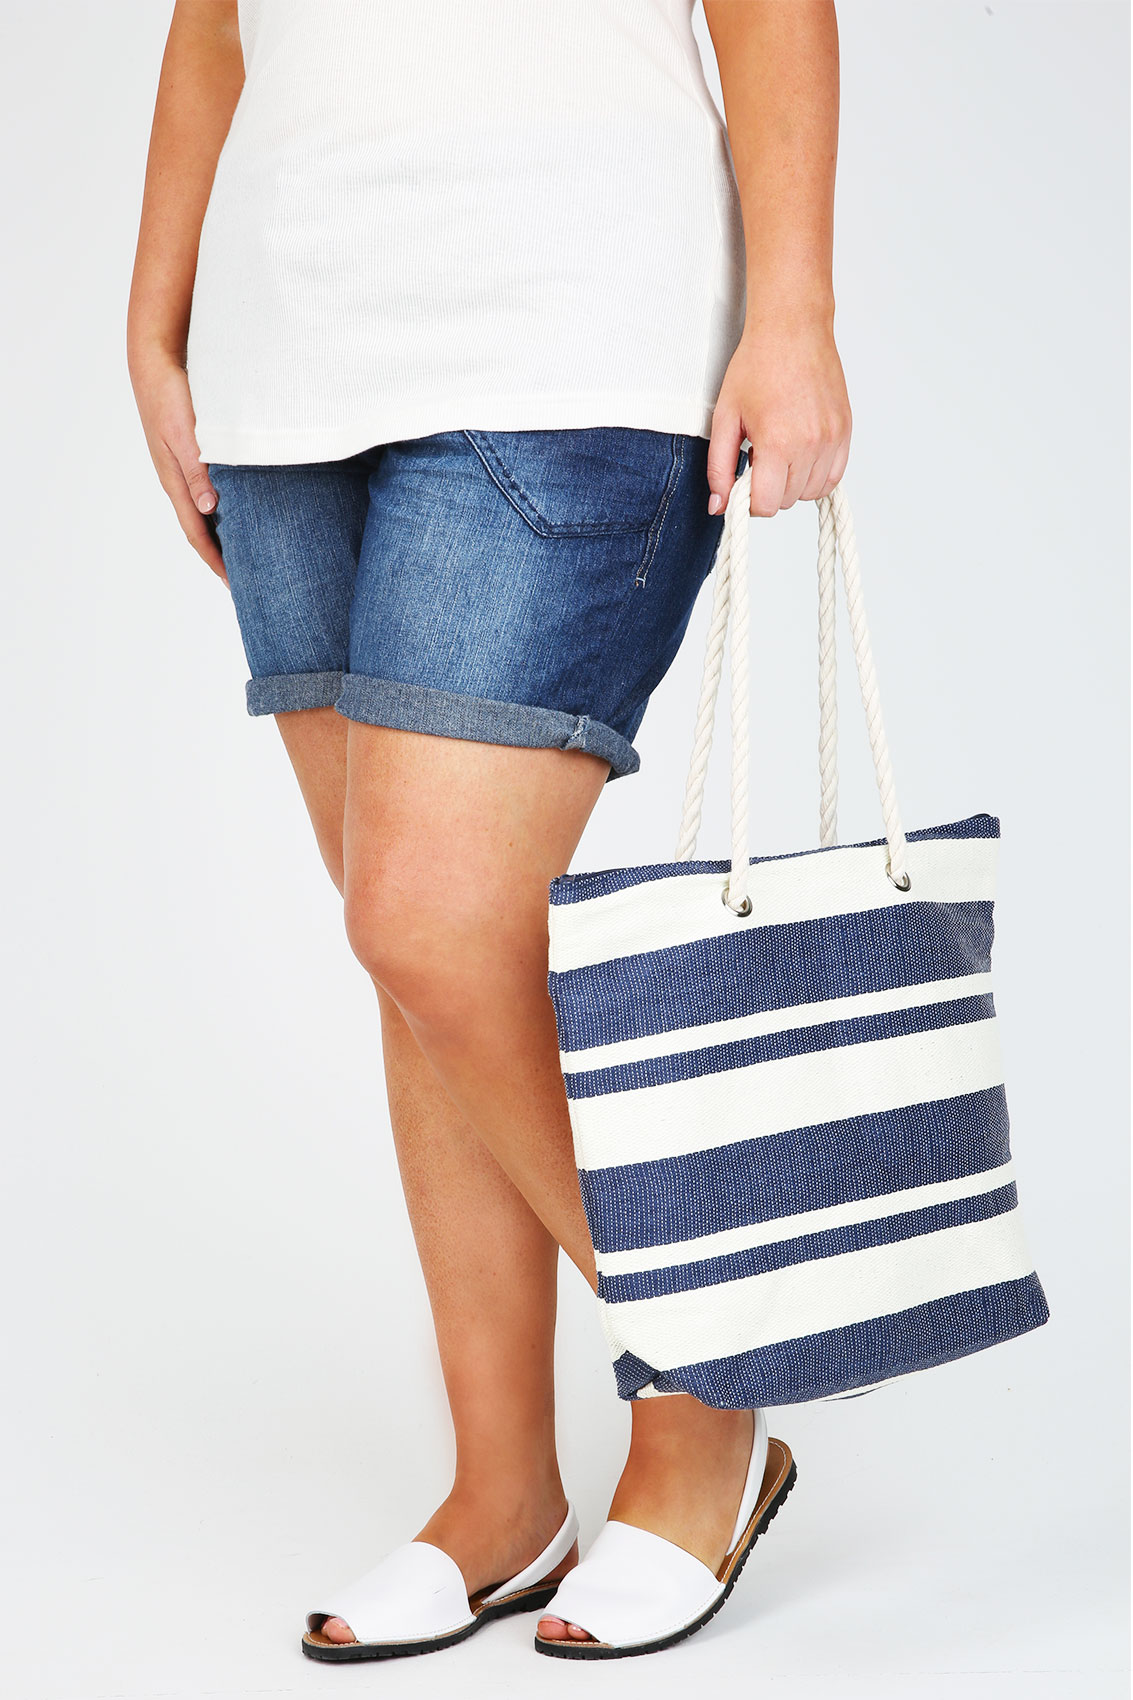 & Cream Nautical Striped Beach Bag With Rope Handles